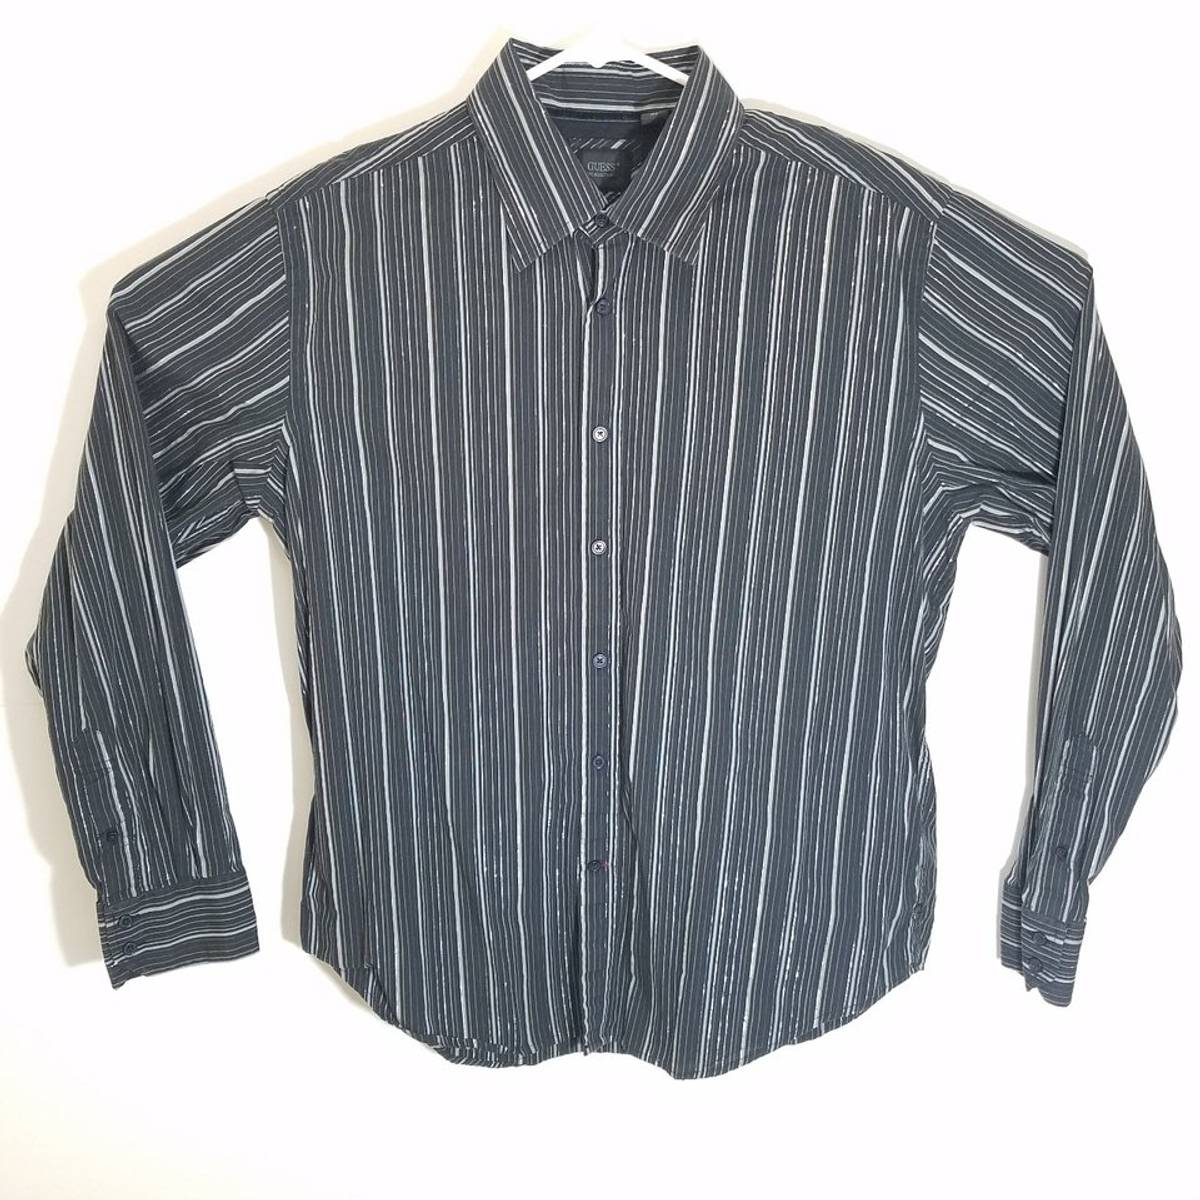 7c542b7b81d9 Guess ×. Guess by Marciano Mens XL Sequin Sparkle Stripe Long Sleeve Button  Down Shirt